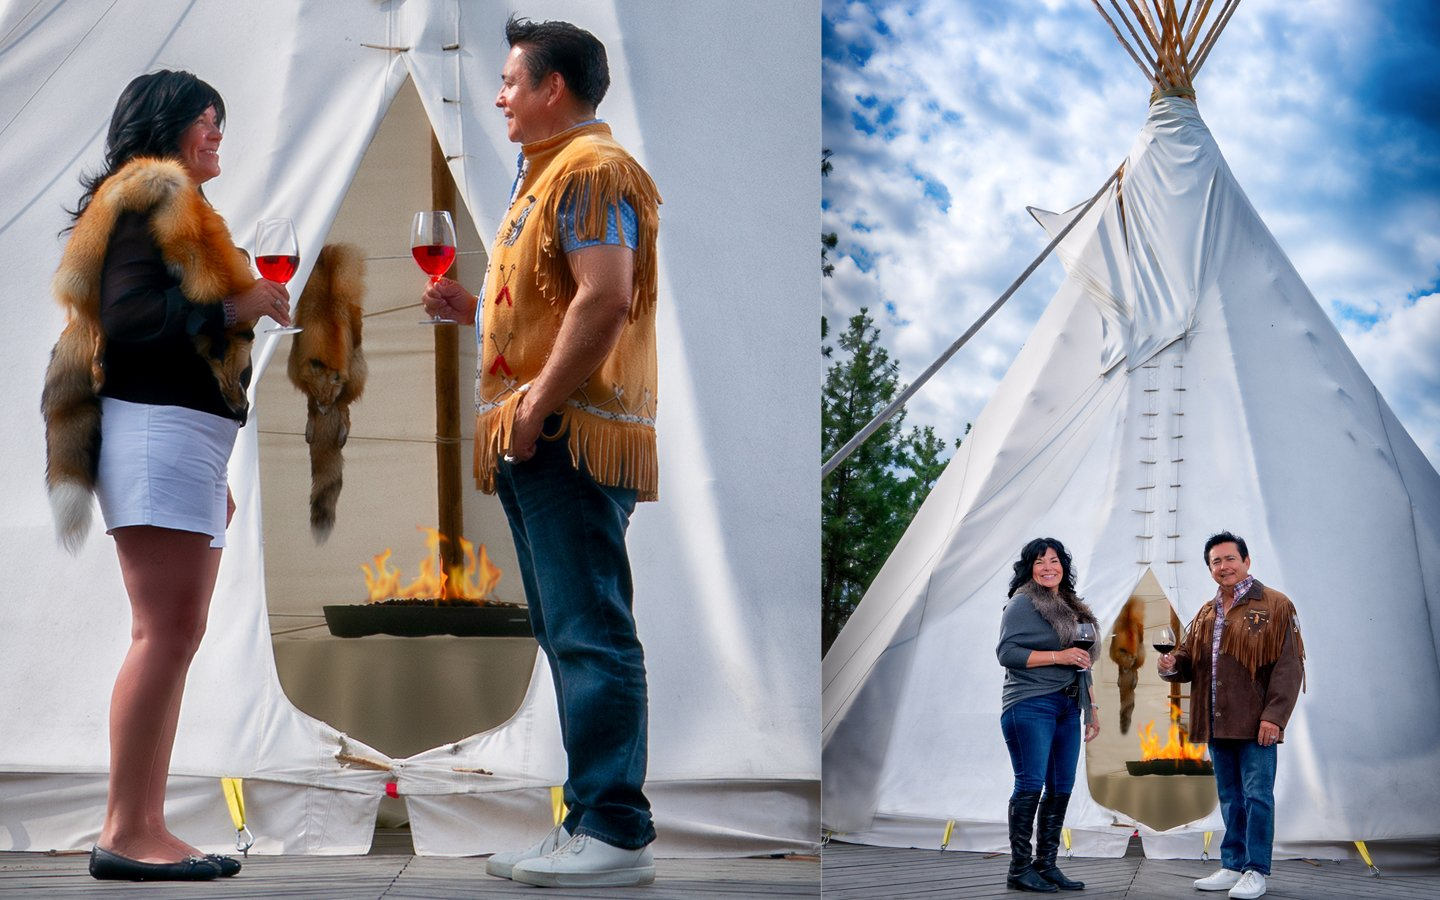 http://spatulamedia.ca/wp-content/uploads/2019/05/robert-and-bernice-louie-at-teepee.jpg